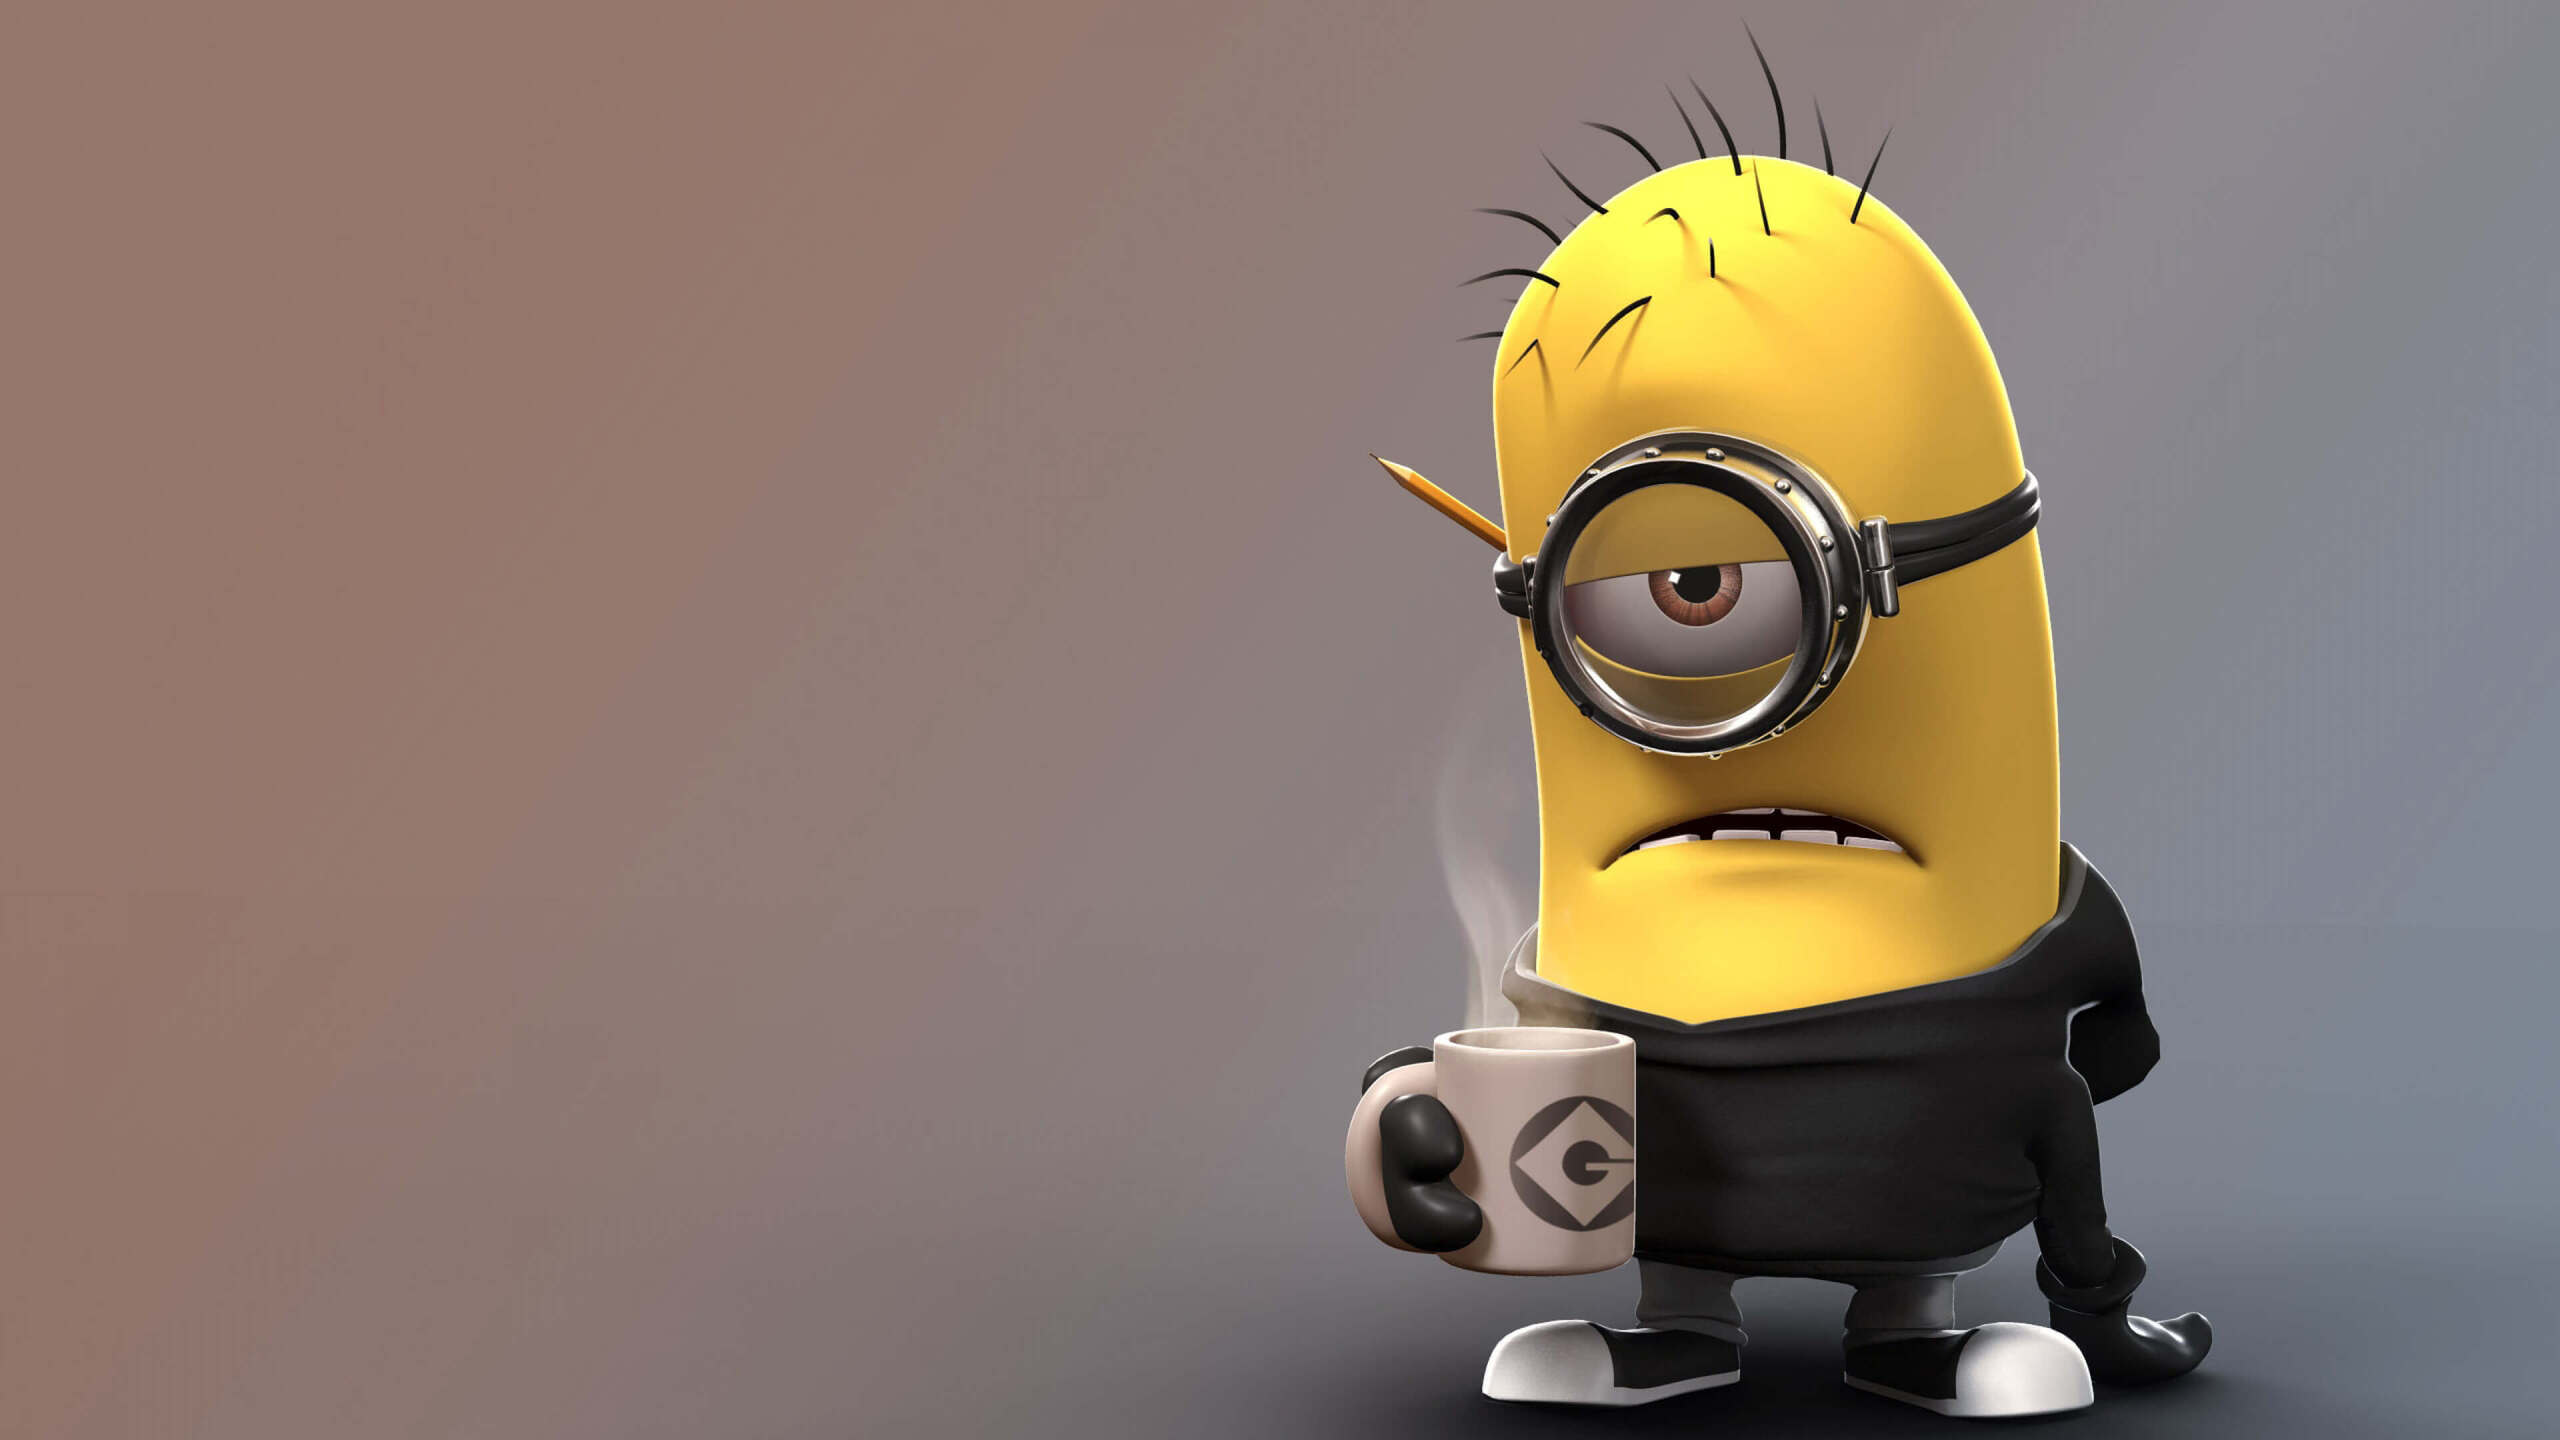 1440p Wallpaper Girls 2560x1440 Despicable Me Angry Minion 1440p Resolution Hd